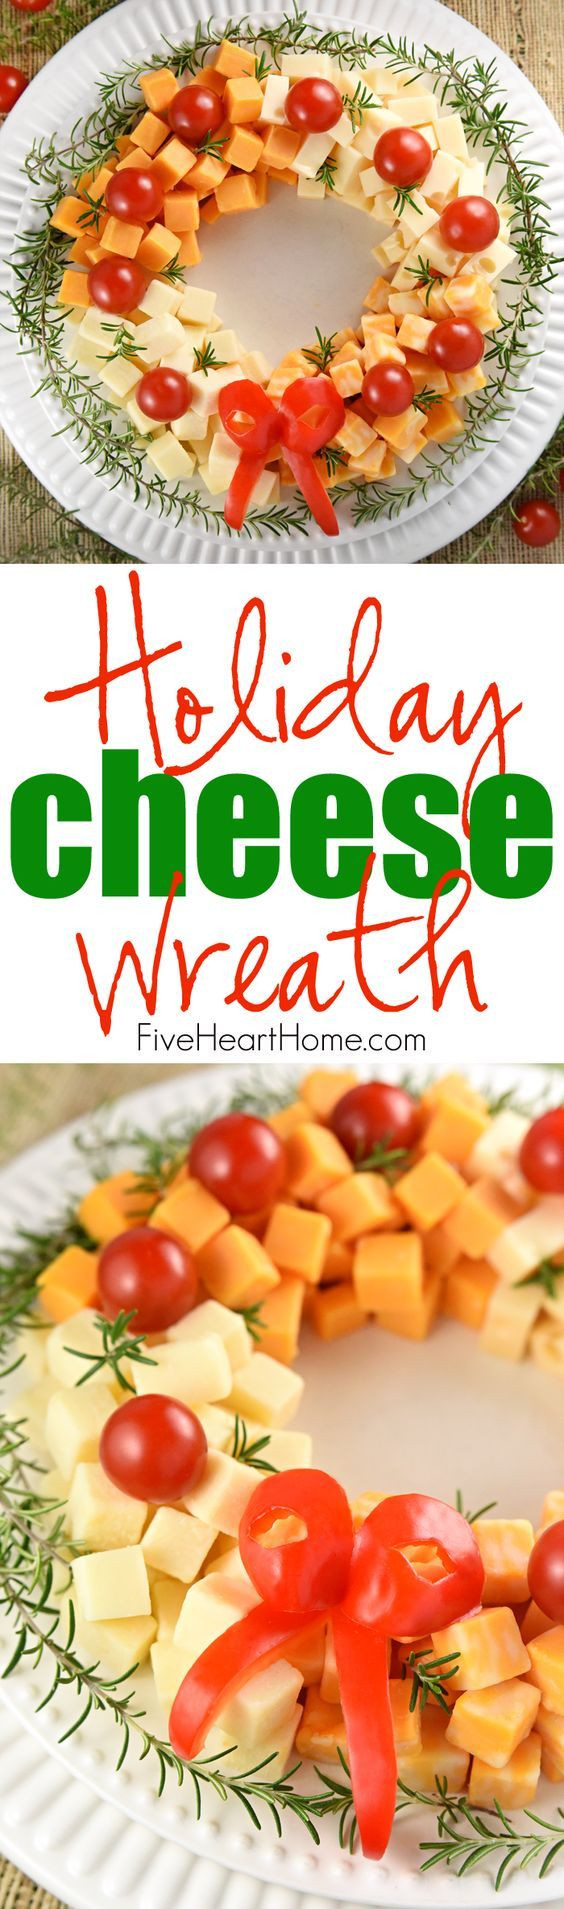 Appetizers For Christmas Eve Party  Holiday Cheese Wreath Recipe